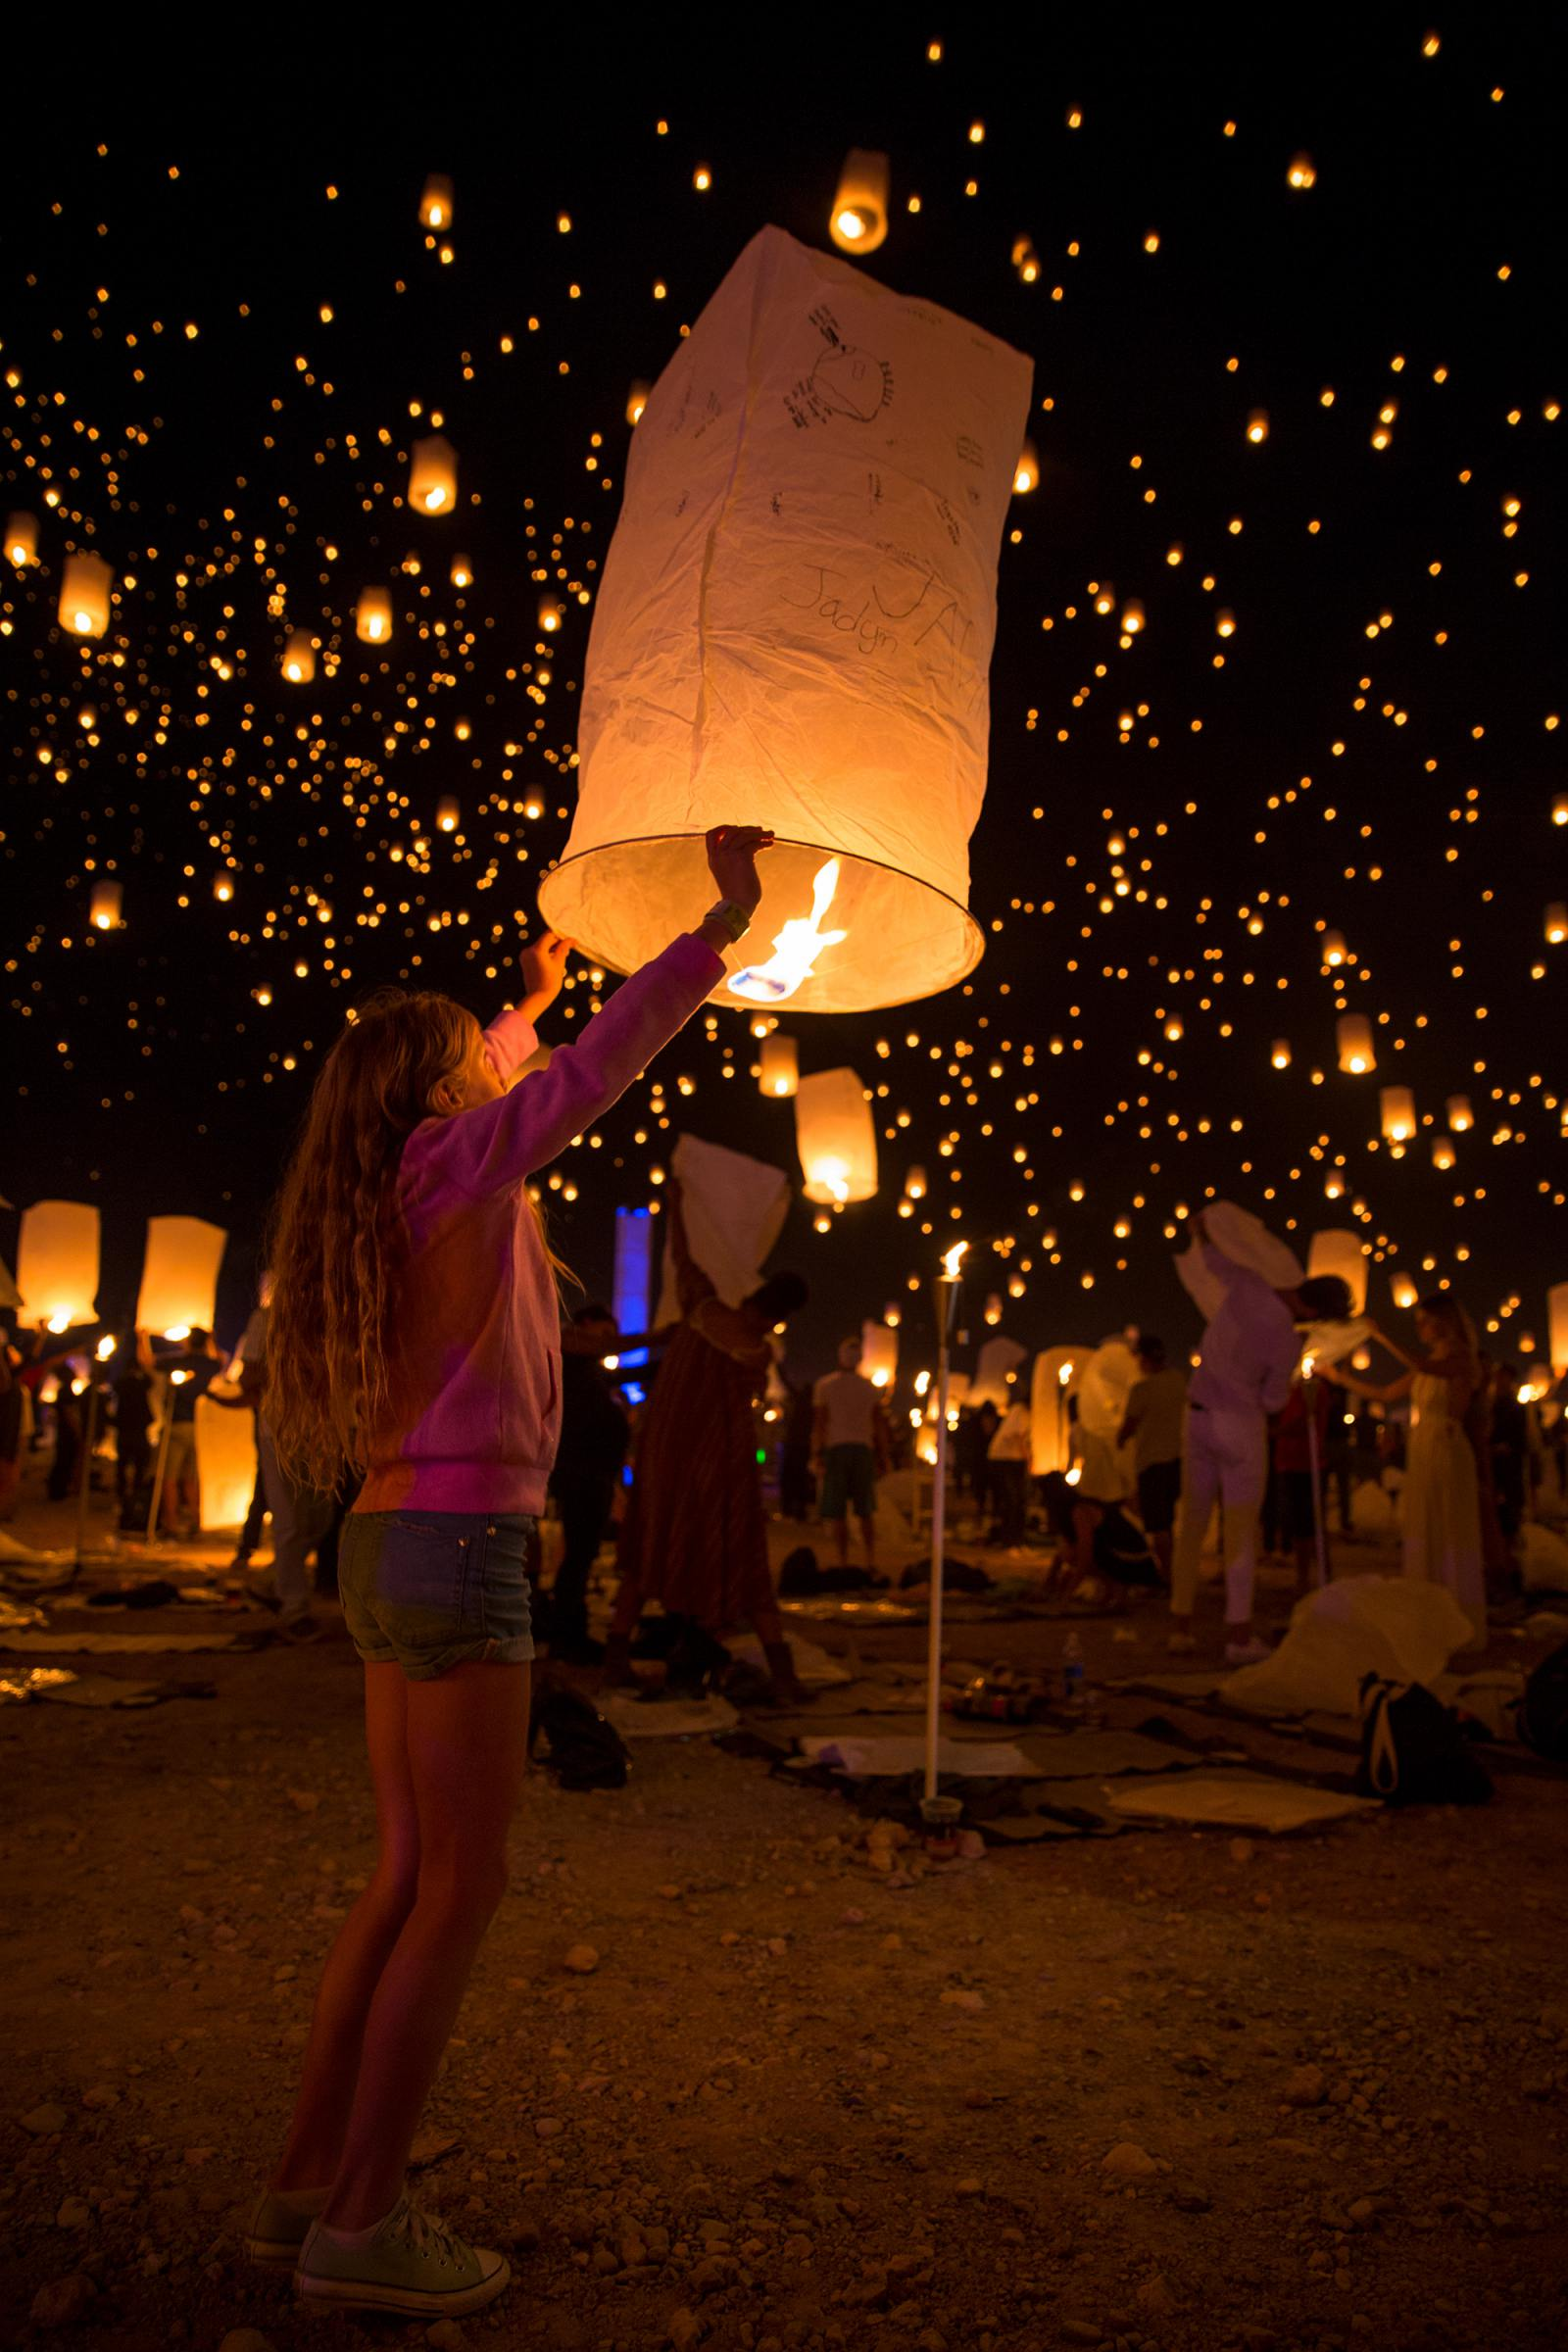 RiSE Lantern Festival | Thrifts and Threads